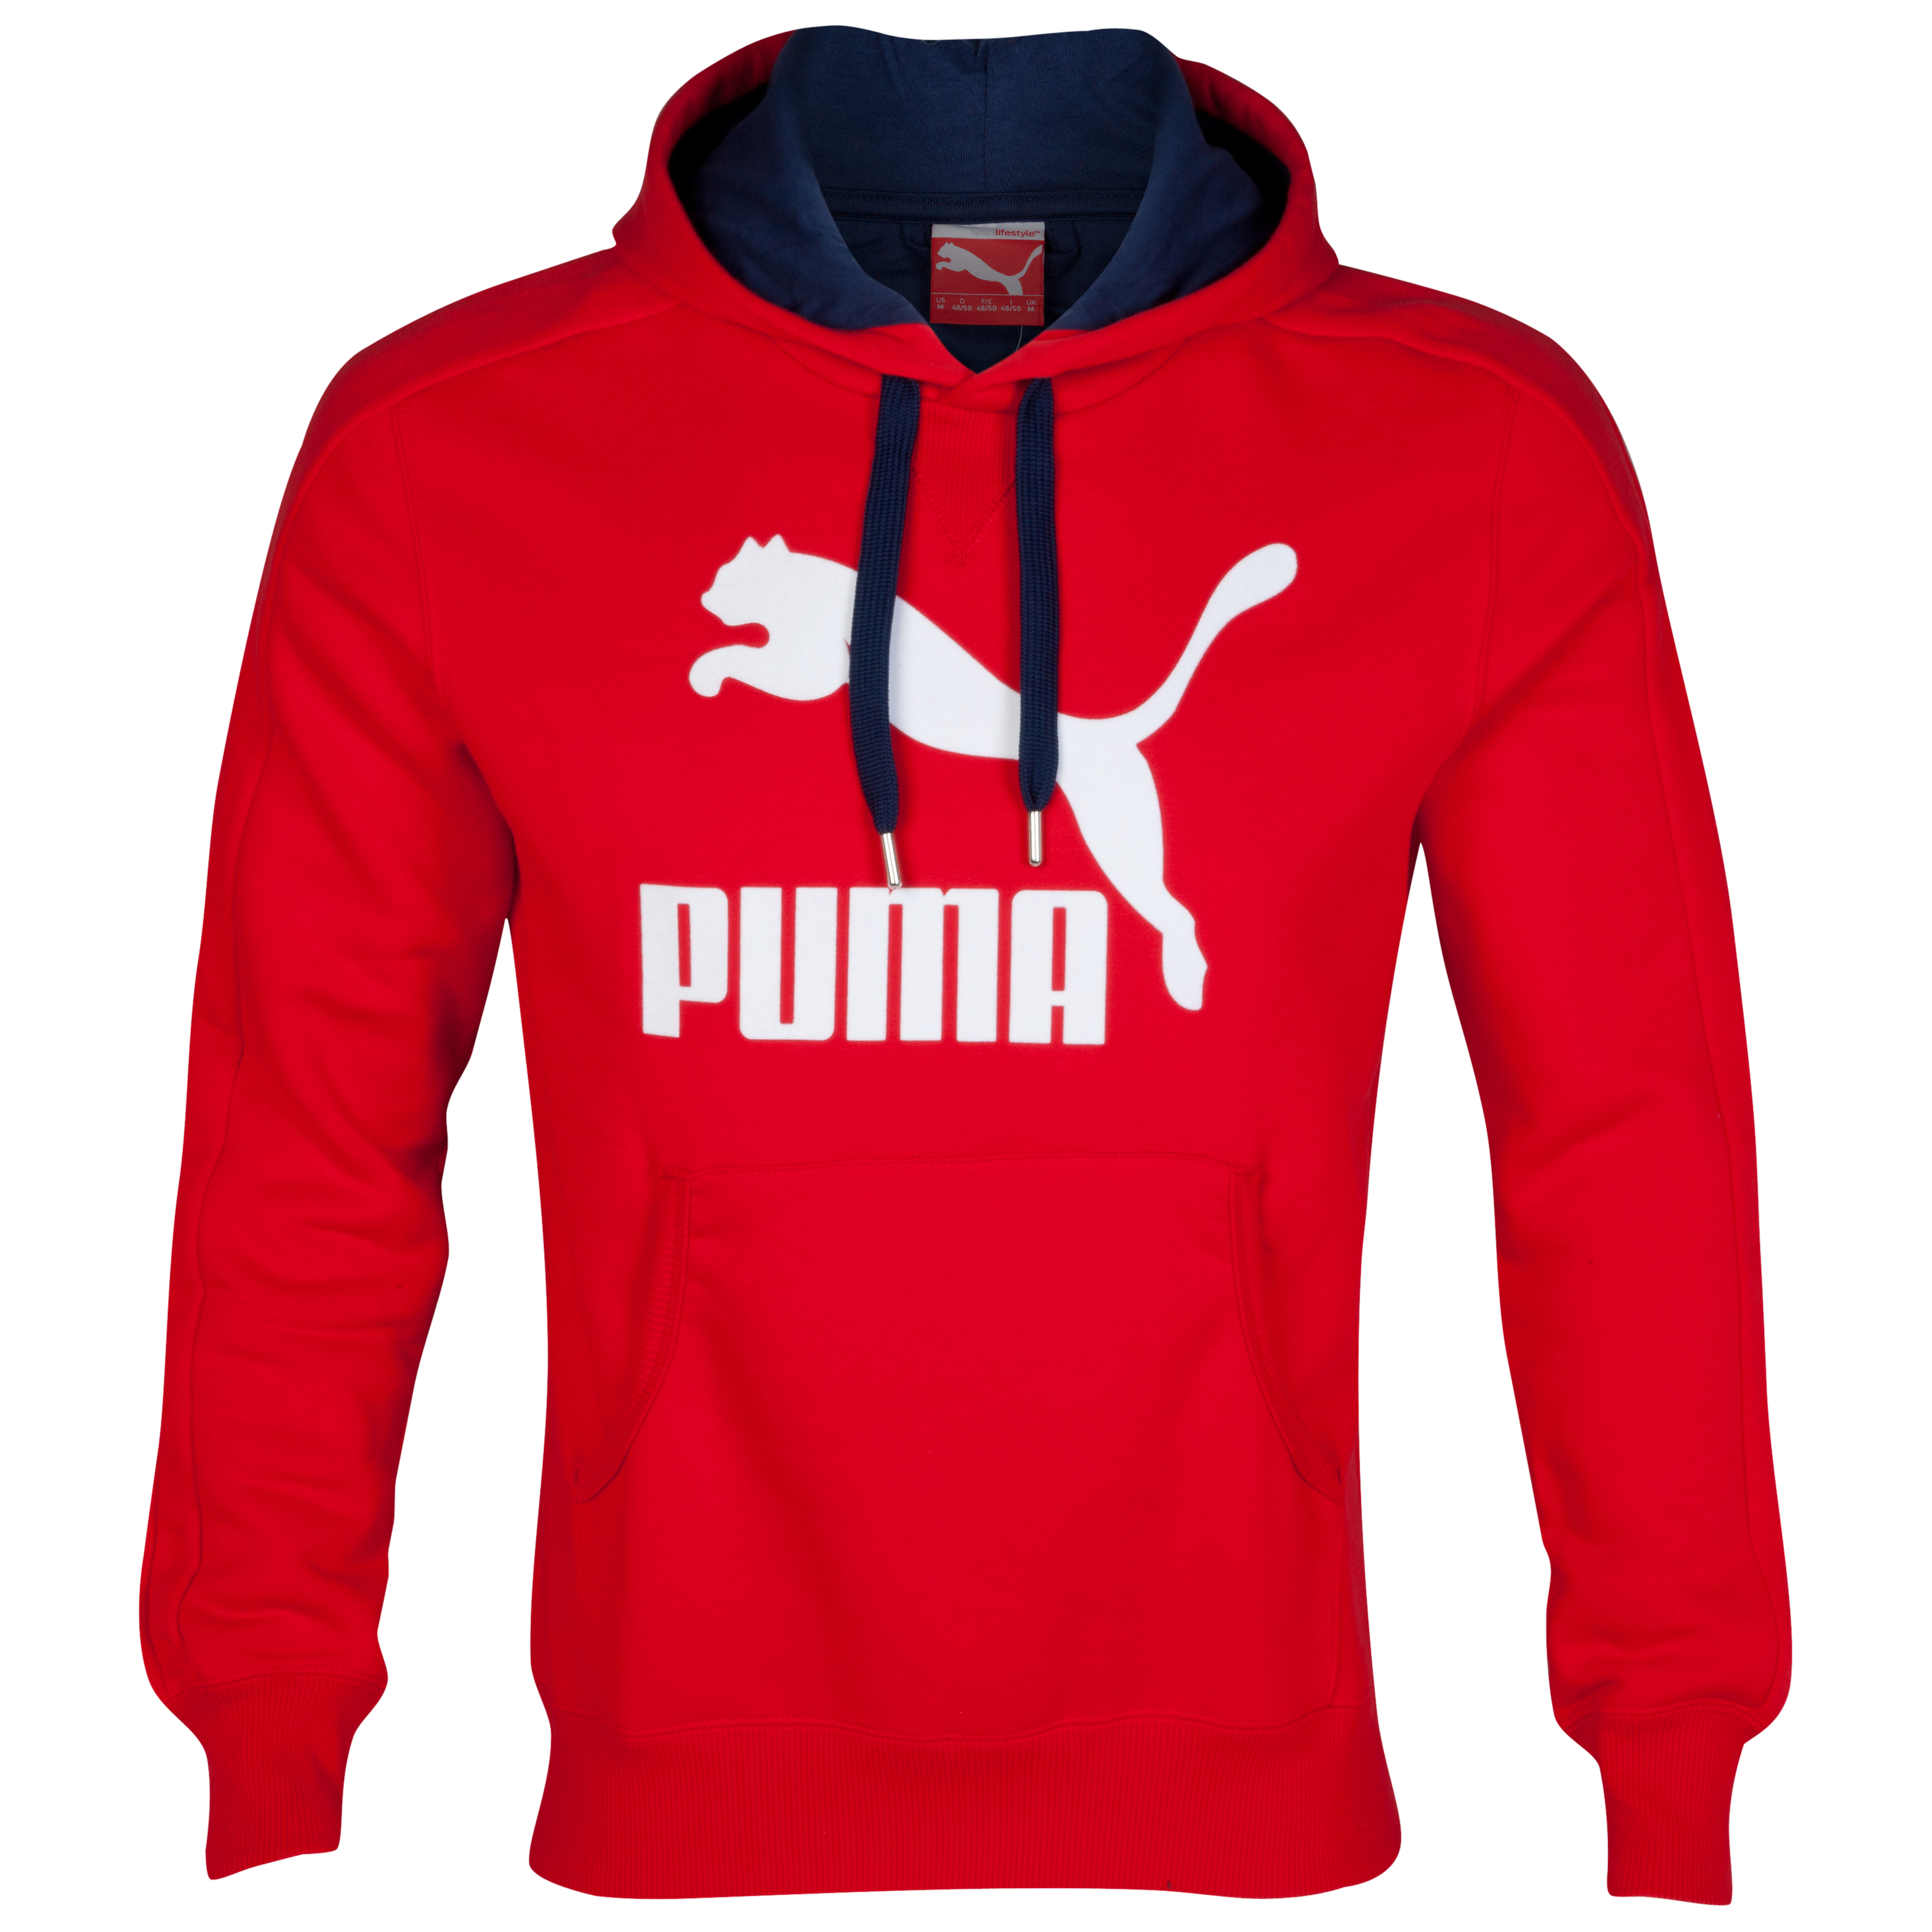 Puma Logo Hoody - Ribbon Red